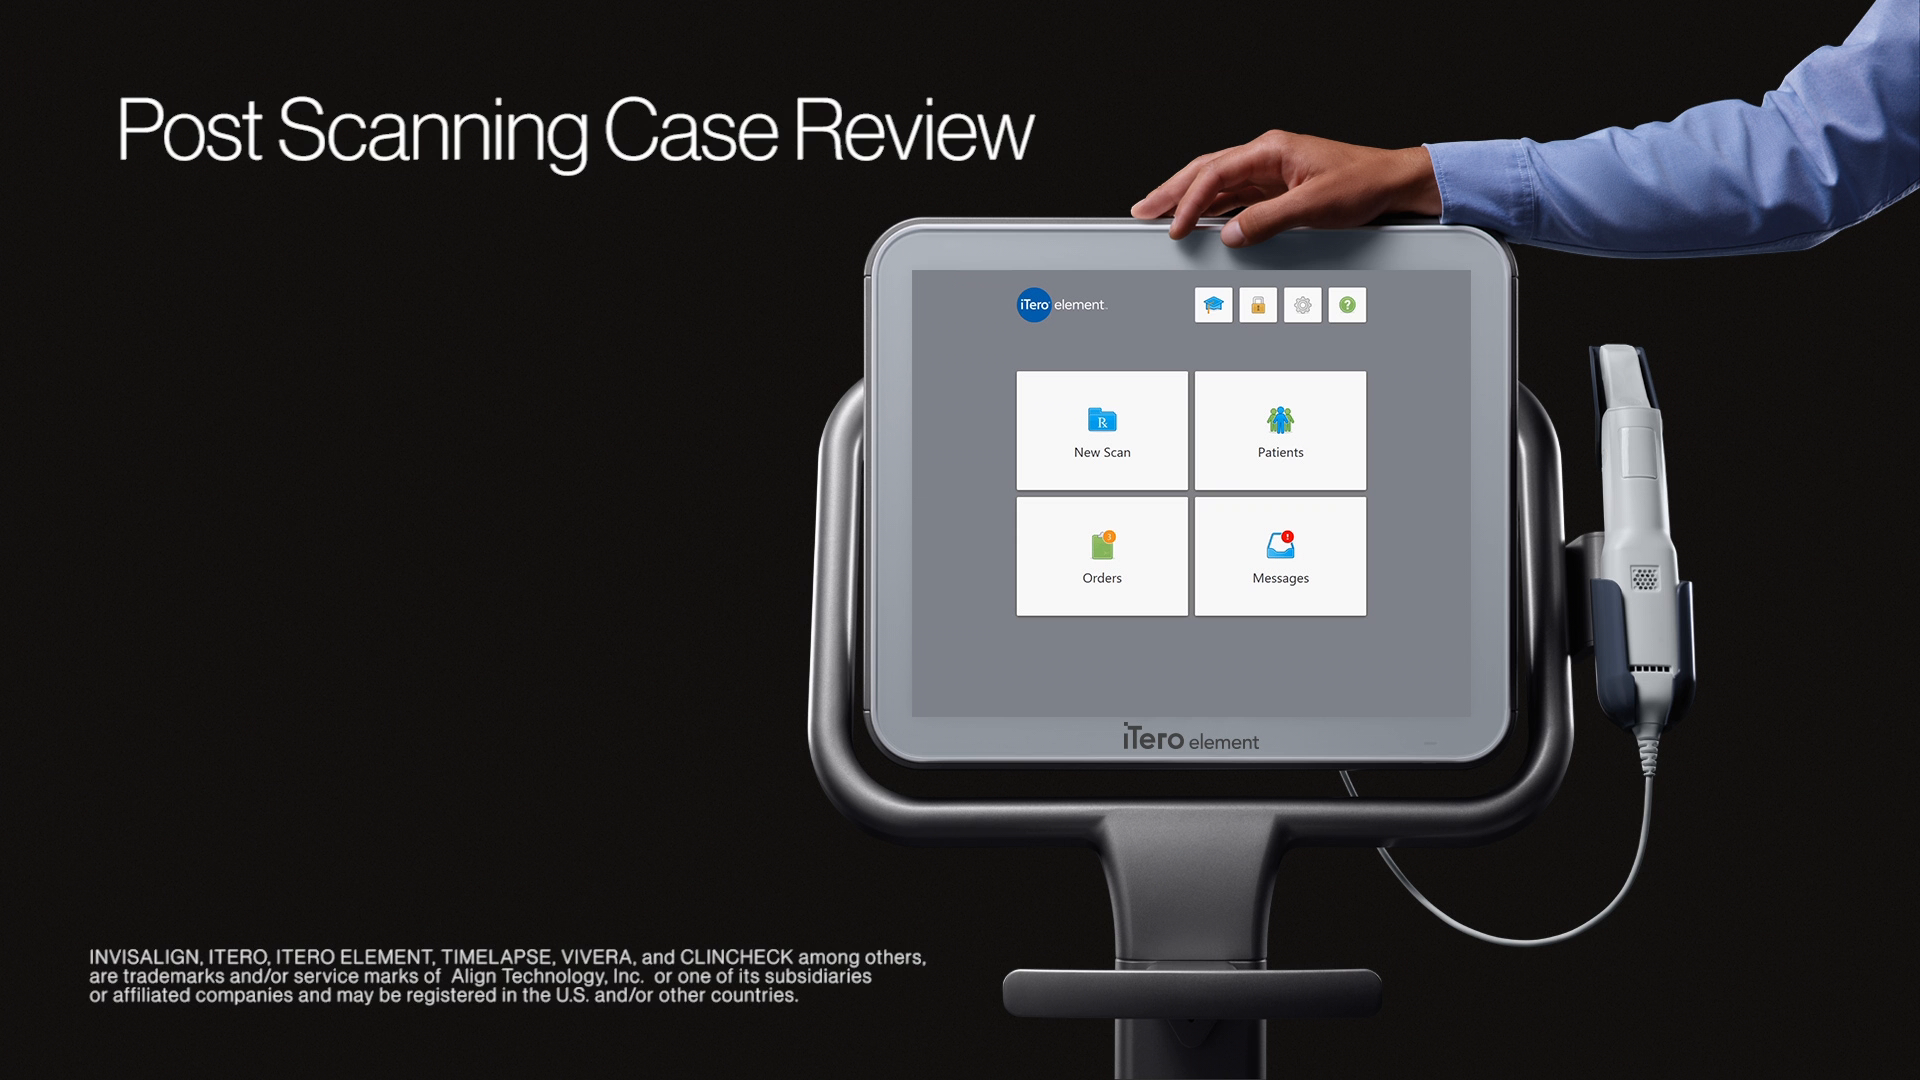 1:30 minutes:  Post-scanning case review